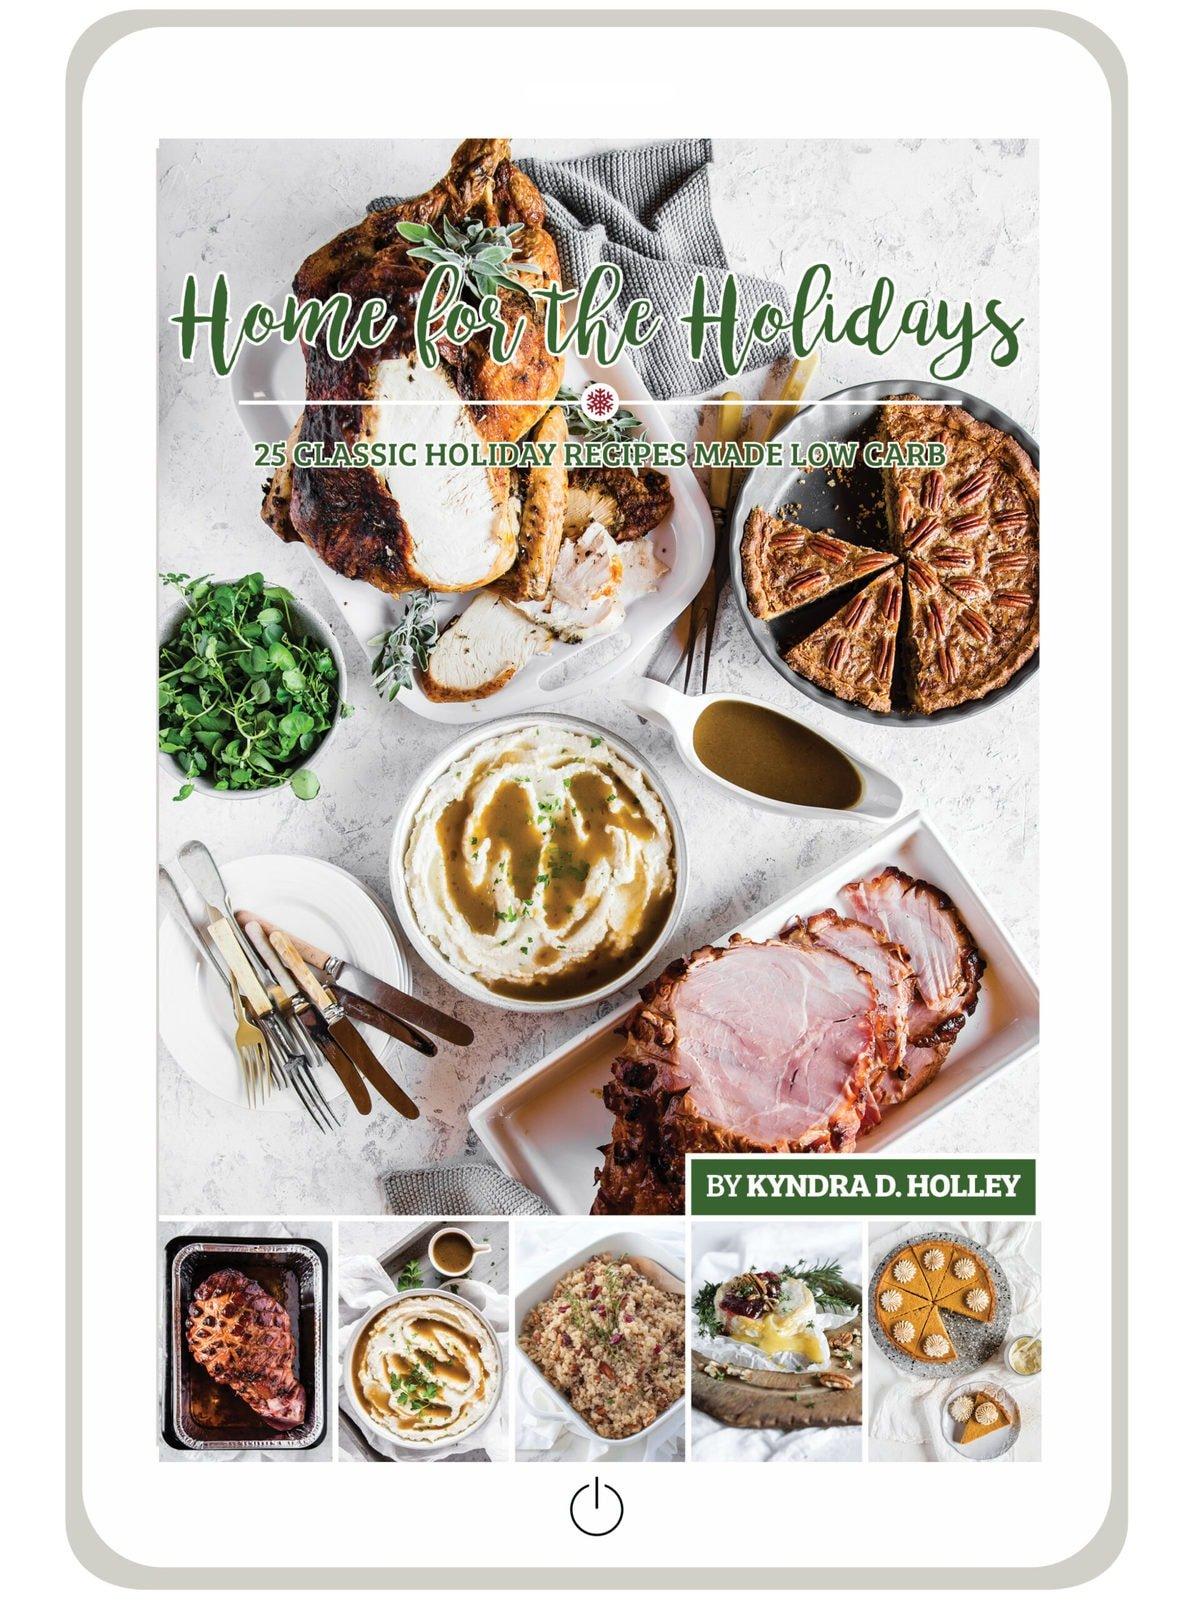 The Home for the Holidays eBook features 25 low carb holiday recipes. All of your favorite classics, recreated in healthier versions.